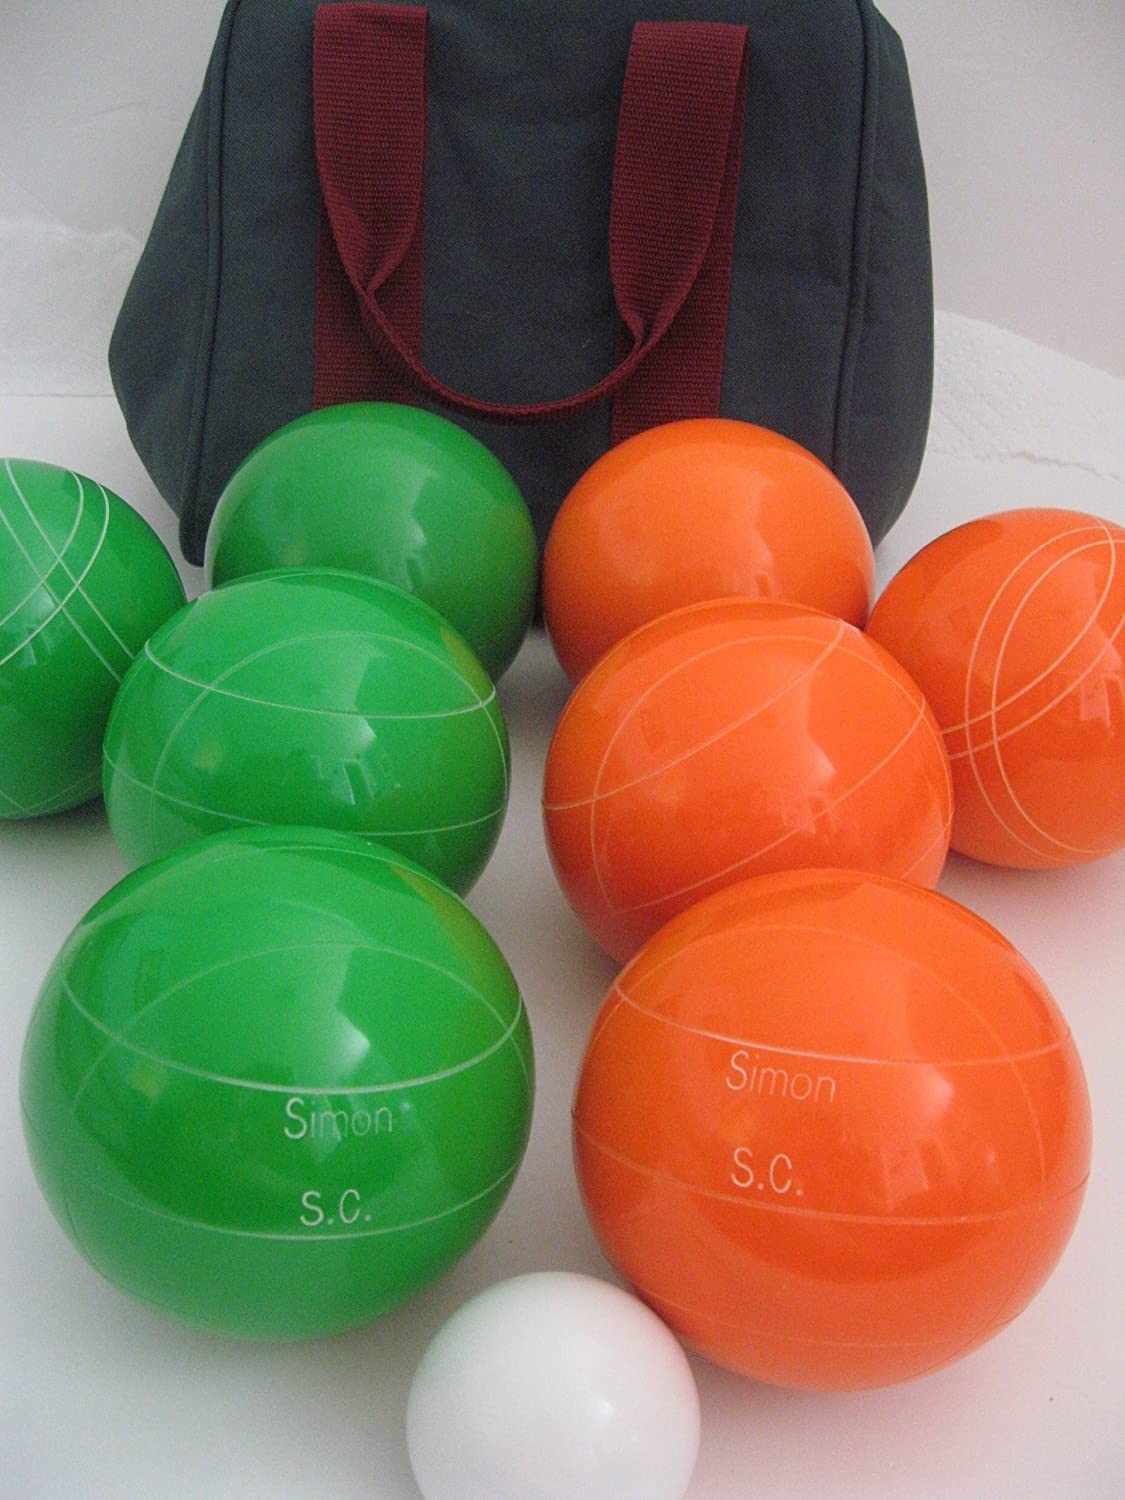 Premium Quality Engraved EPCO Bocce package – 107mm EPCO Green and Orange bal… günstig